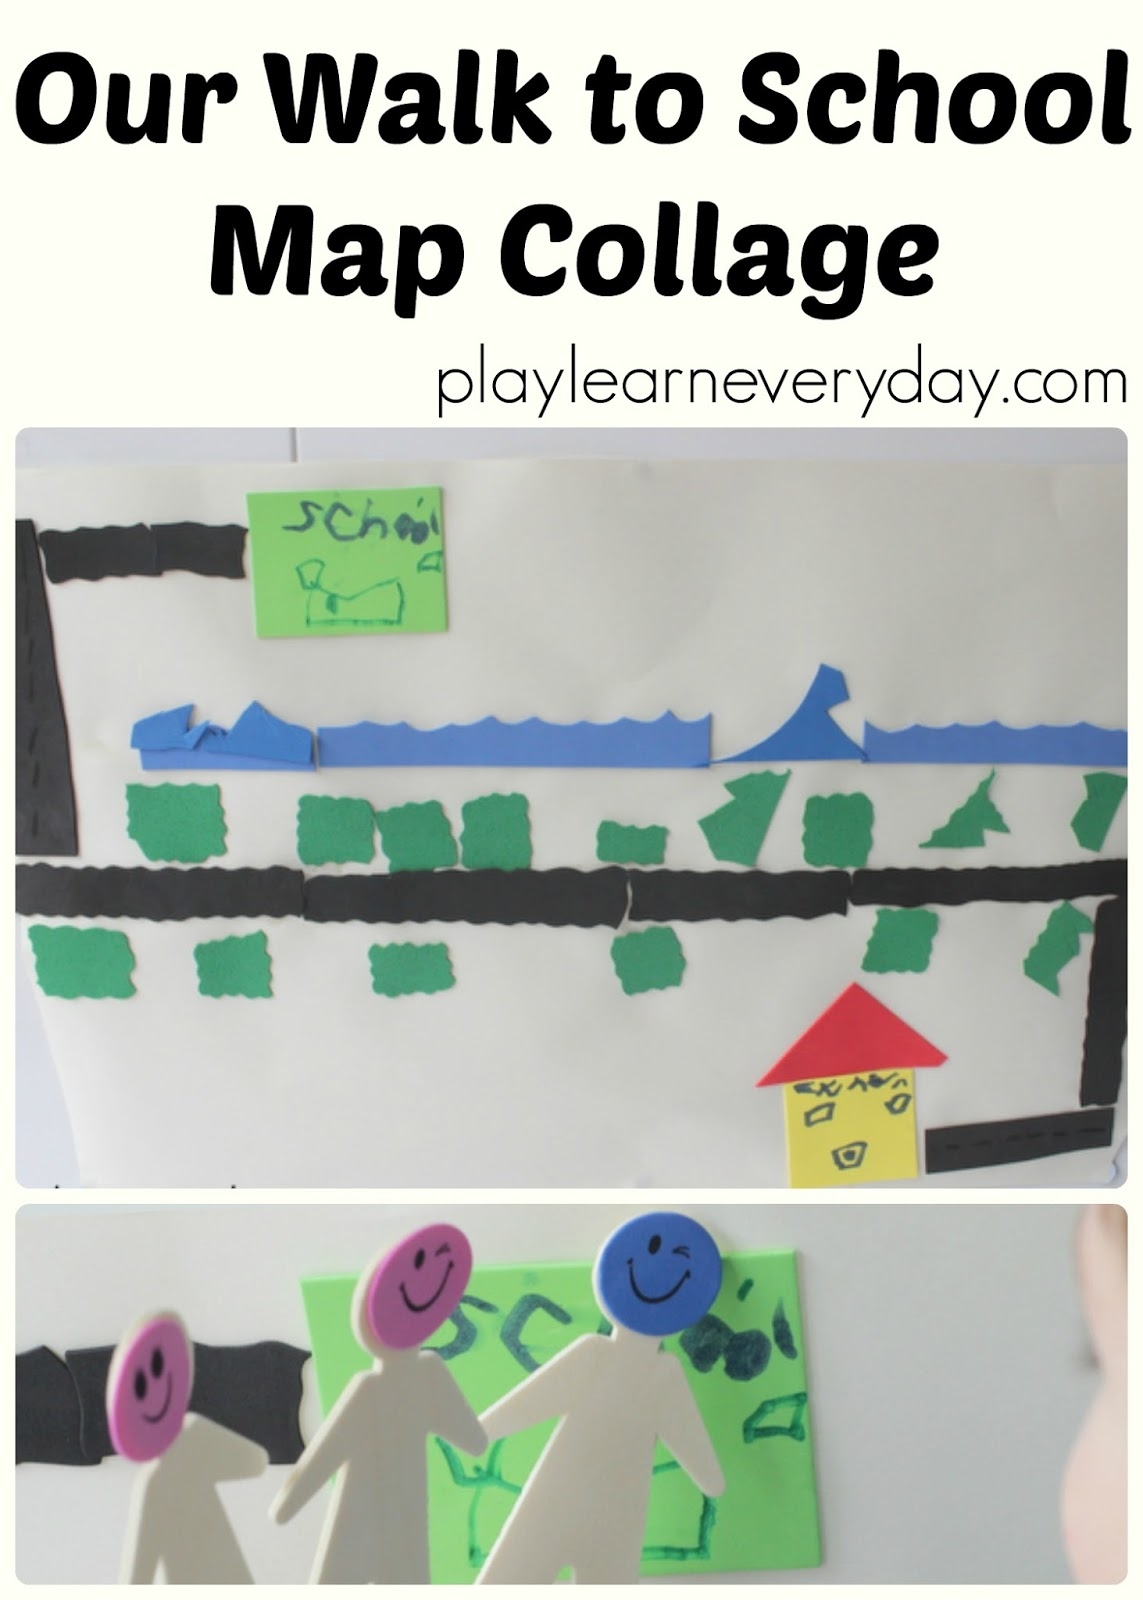 Our Walk To School Map Collage